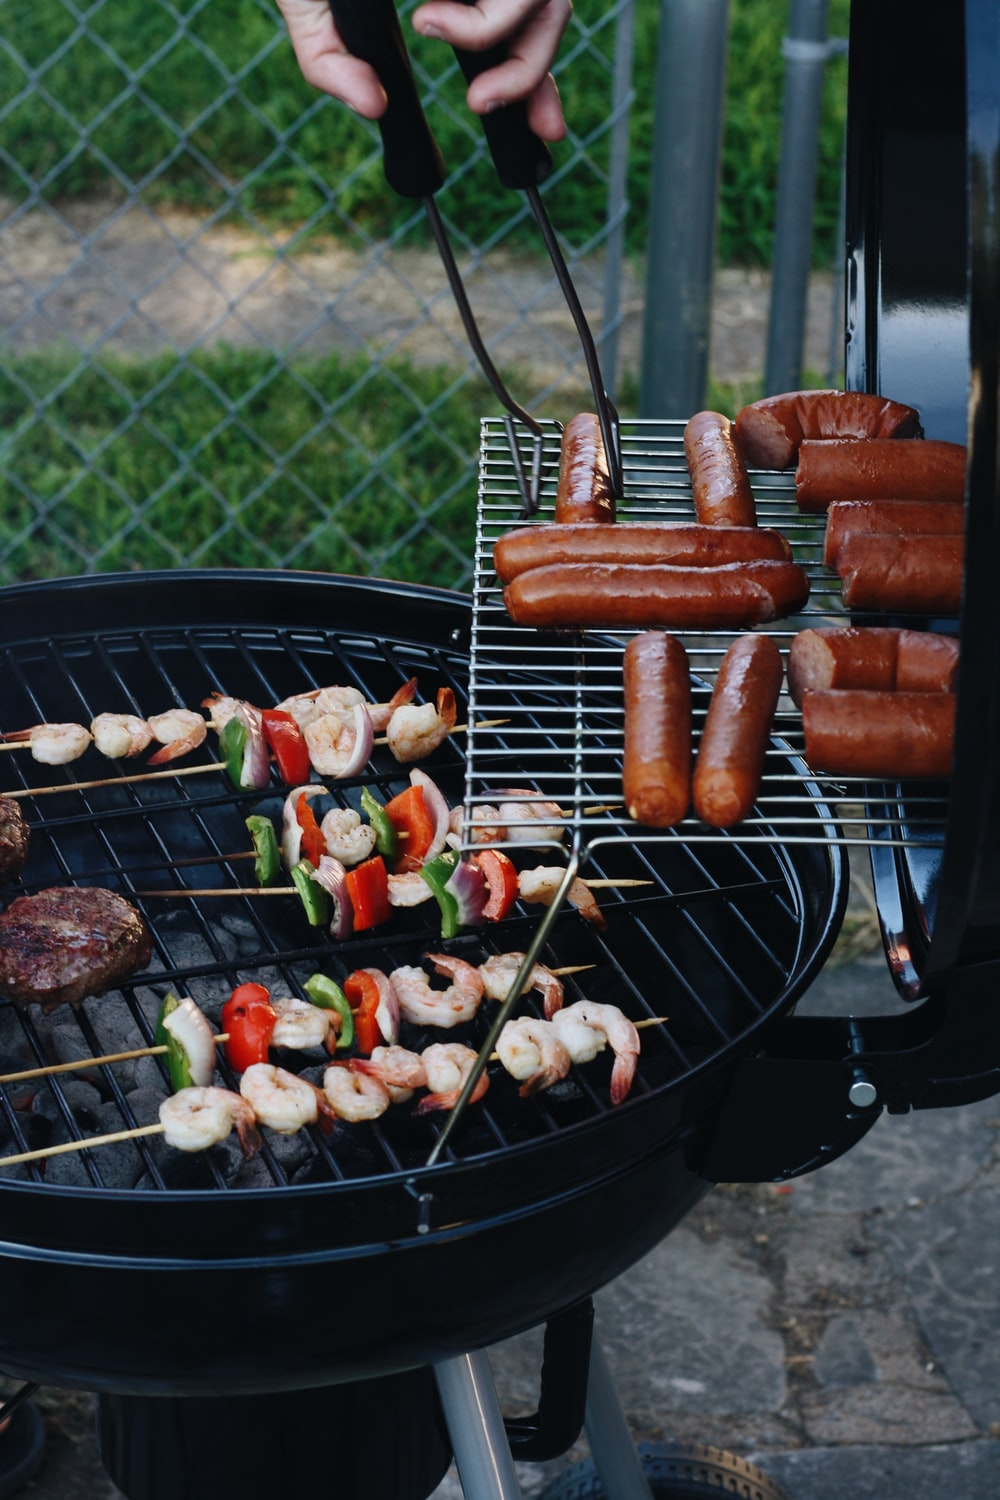 grilled sausage and meat beside gray chain-link fence